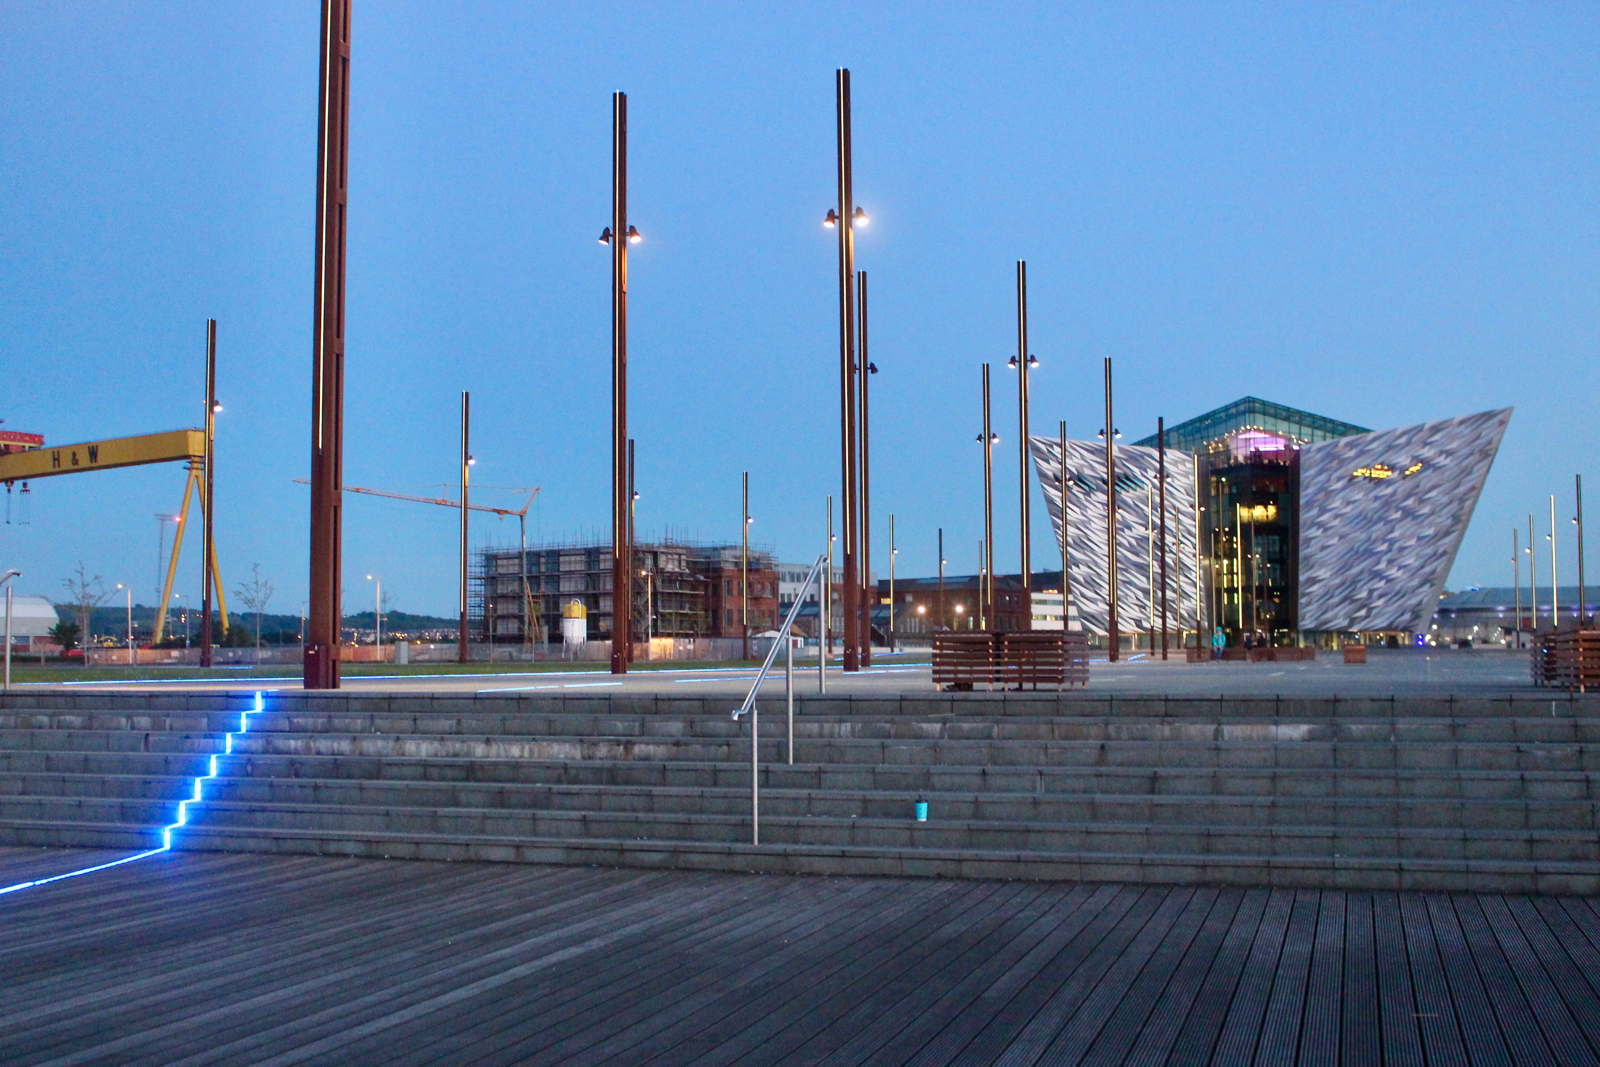 things to do in belfast, titanic belfast, titanic exhibition centre Belfast, what to do in Belfast, visit Belfast, Belfast blog, Belfast blogger, tourism Belfast, northern ireland tourism, titanic quarter Belfast, travel blog belfast, titanic slipway